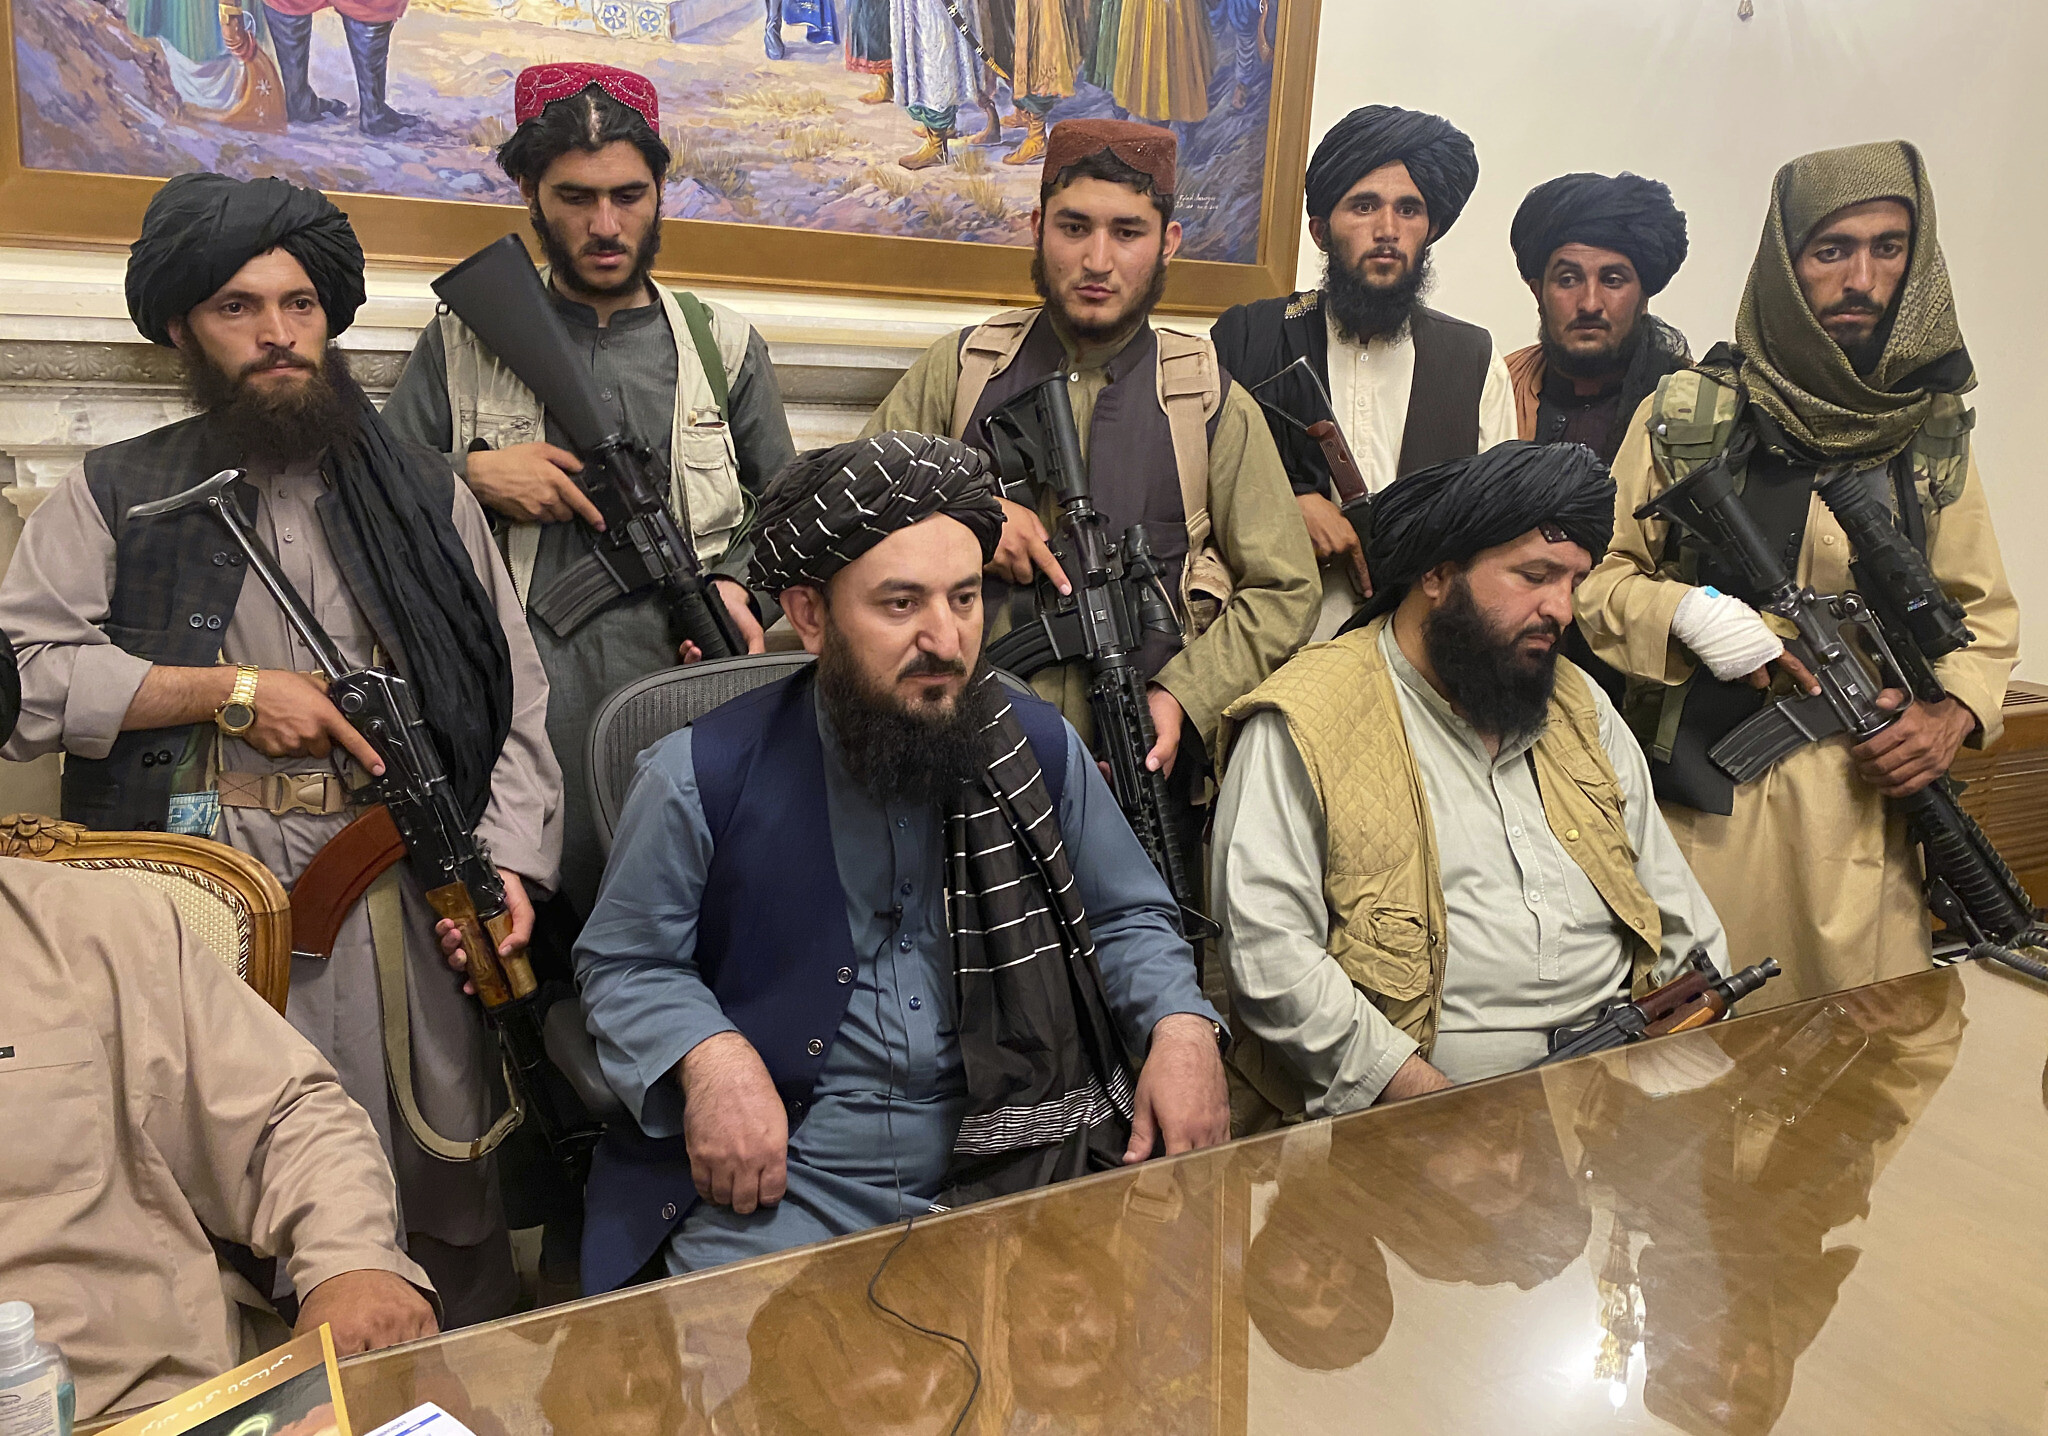 Taliban sweep into Kabul presidential palace, capping shock Afghanistan  takeover | The Times of Israel